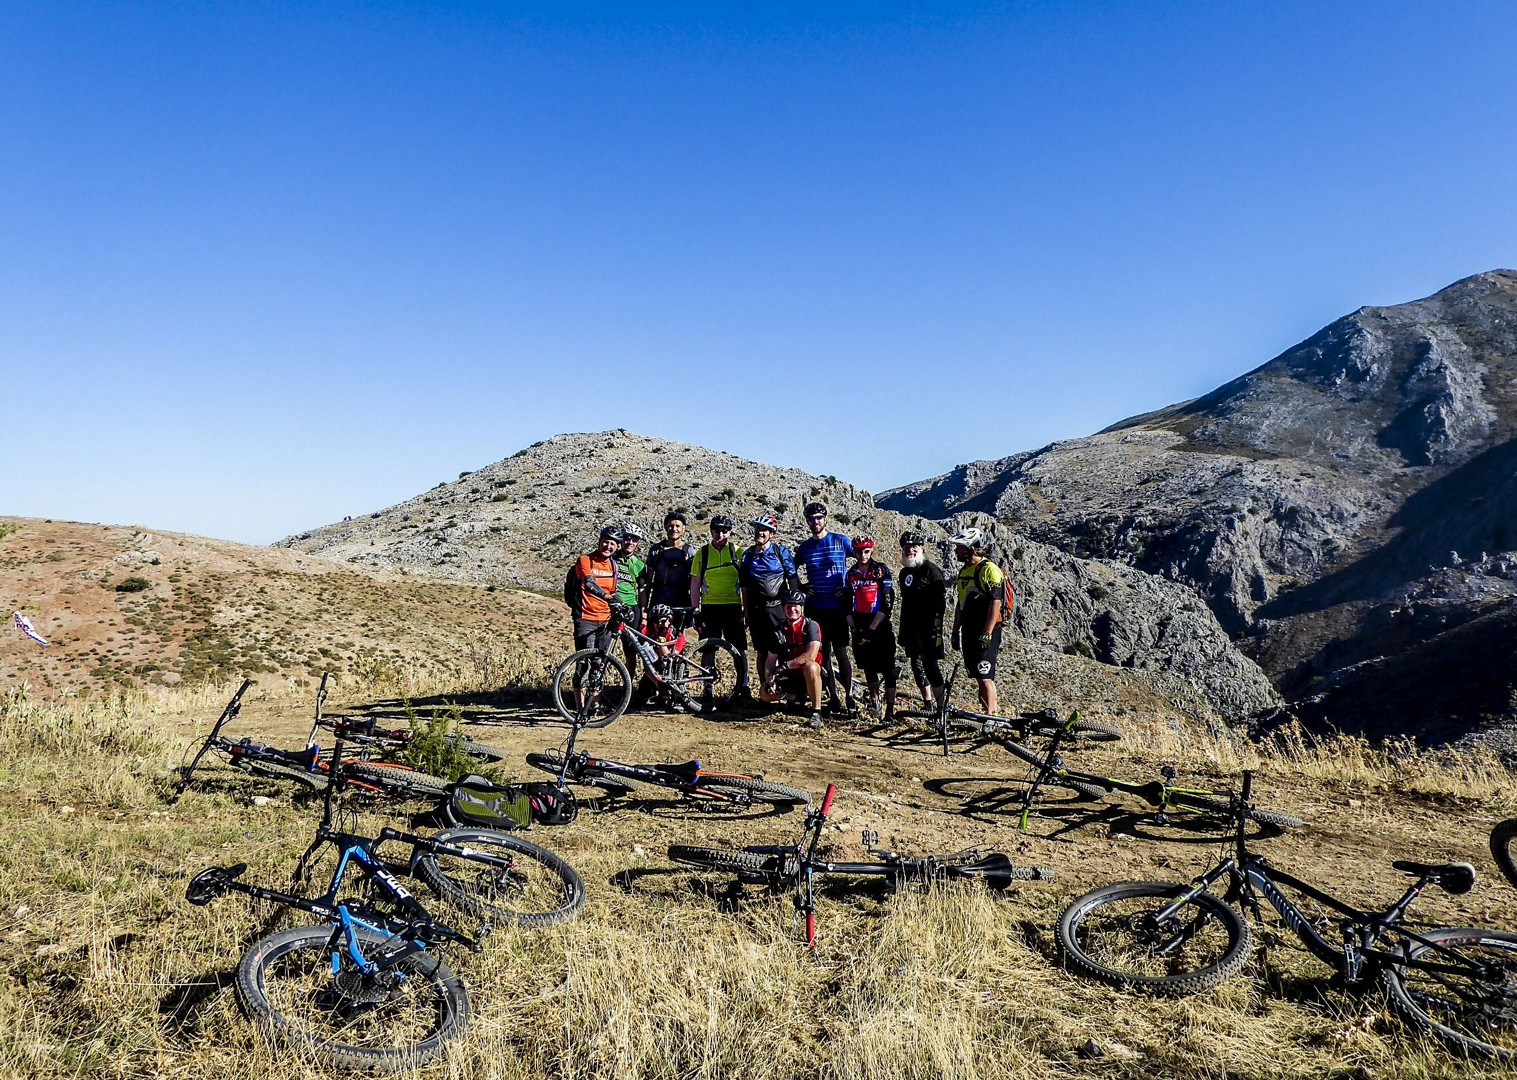 mountain-biking-make-friends-on-guided-tour-spain-group.jpg - Spain - Awesome Andalucia - Guided Mountain Bike Holiday - Mountain Biking